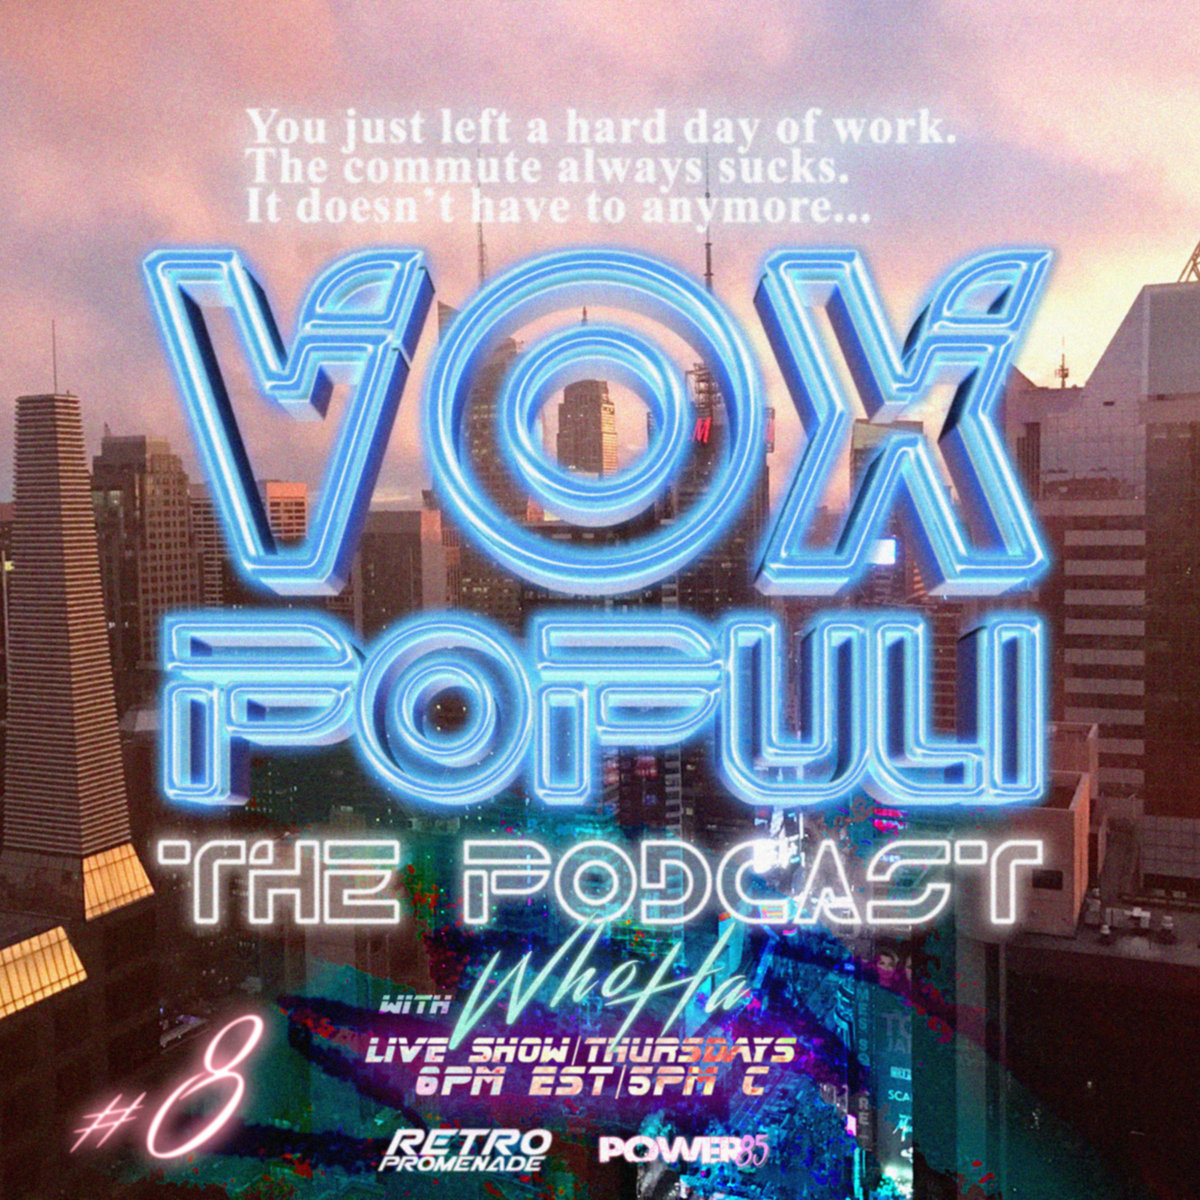 8 Cool Guy Rambo 6 8 17 | Vox Populi: The Podcast